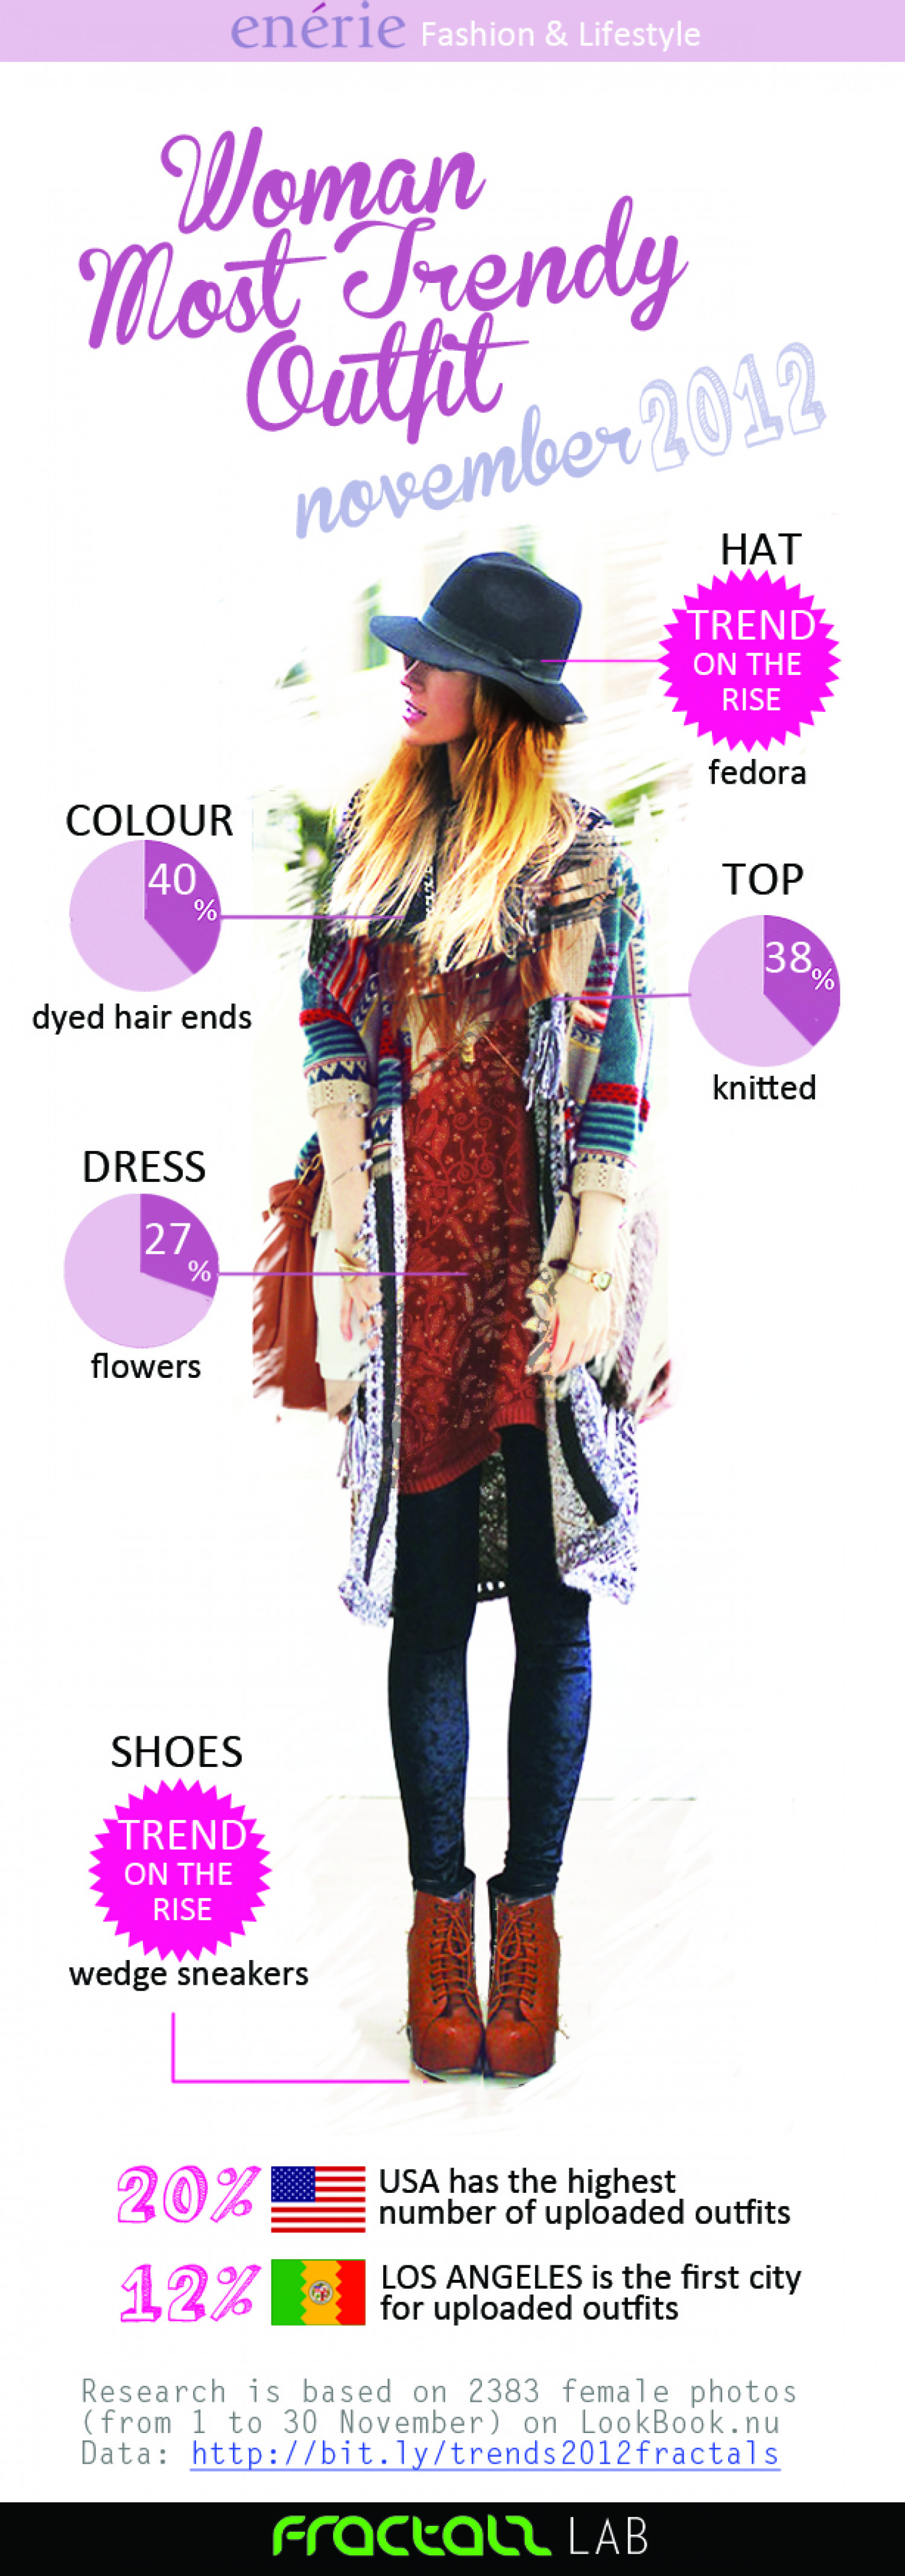 Woman Most Trendy Outfit November 2012 Infographic